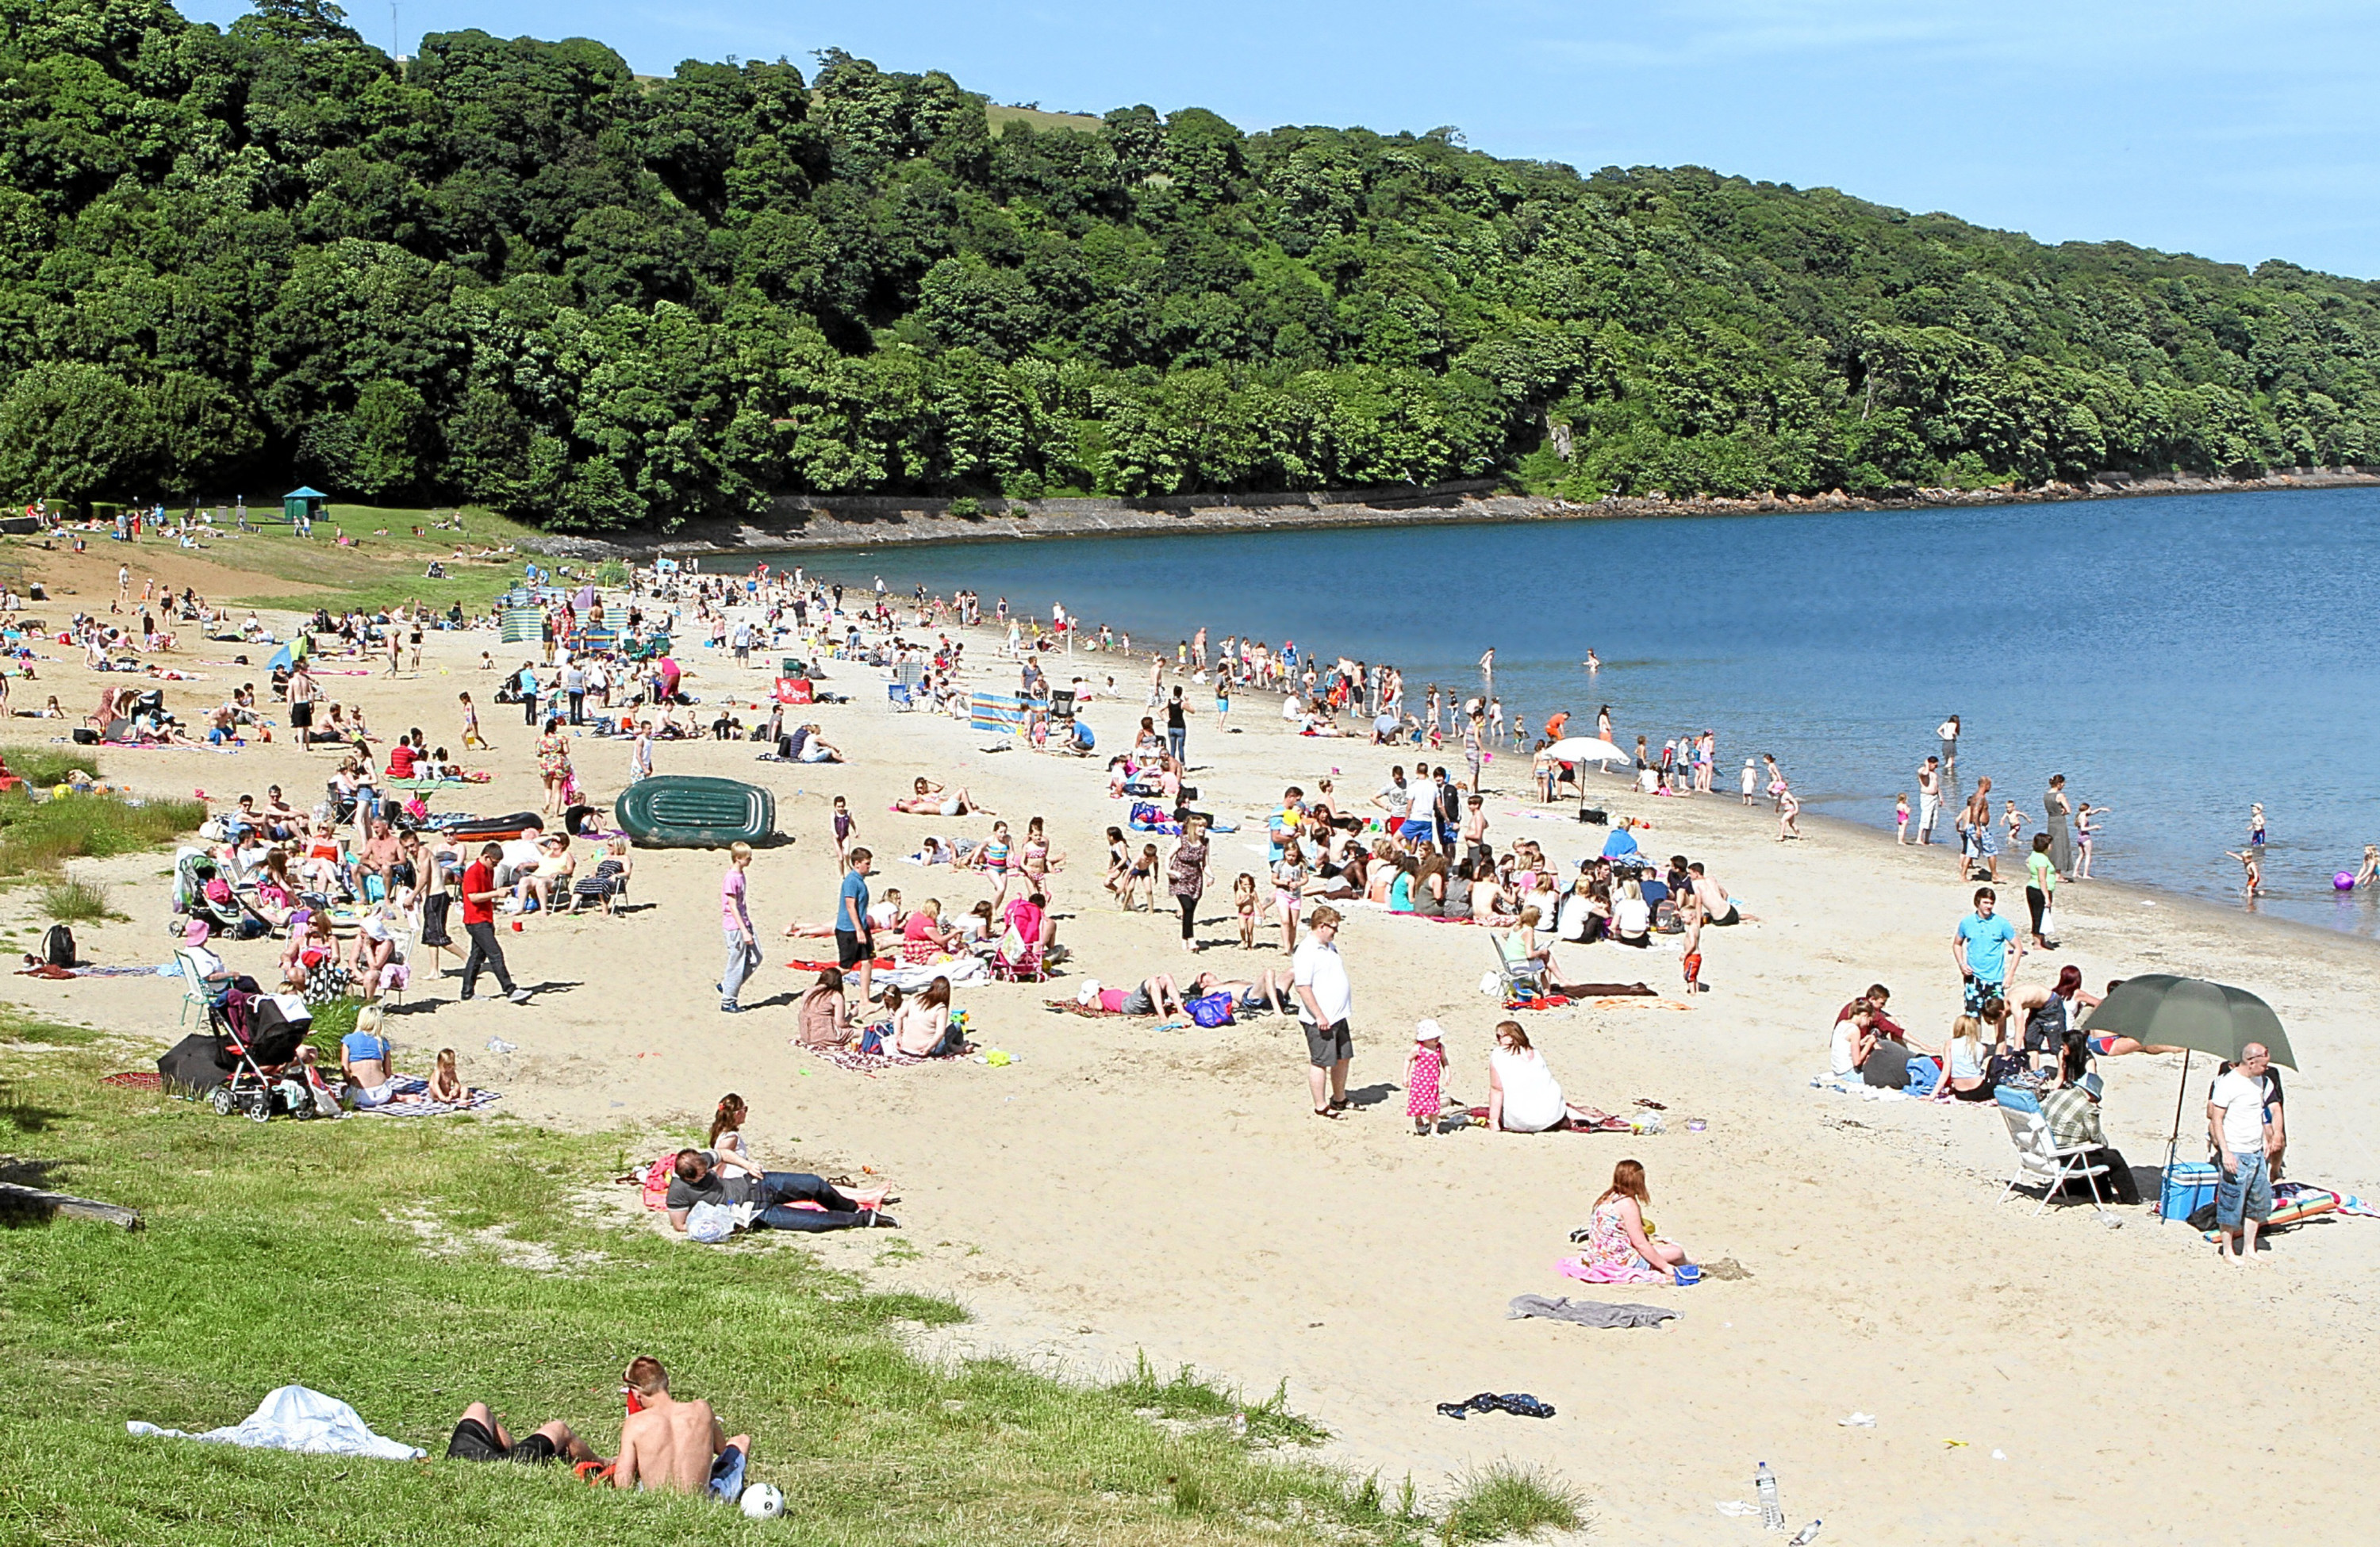 Silver Sands is busy with families on a sunny day but is often used by underage drinkers in the evenings